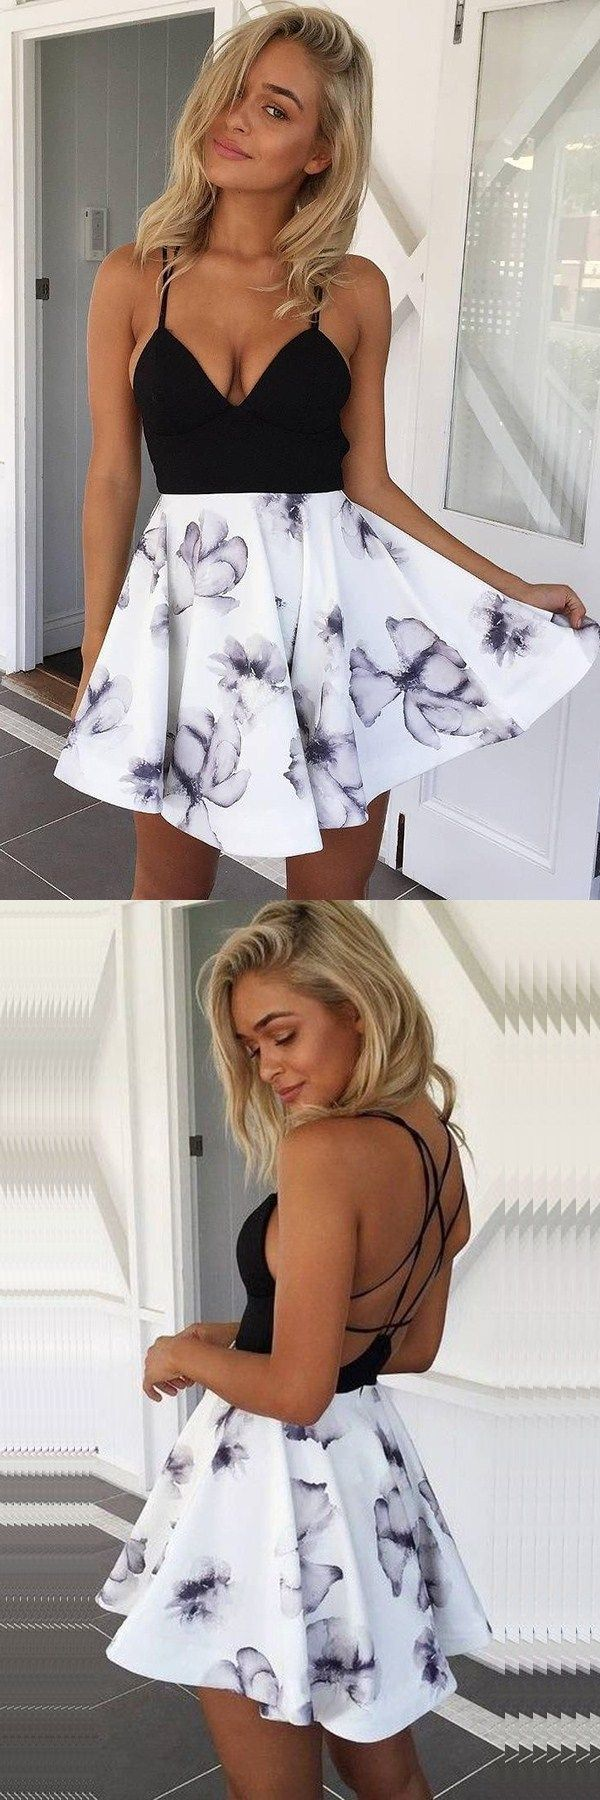 simple a-line homecoming dresses, cheap floral criss-cross back party dresses, fashion short prom dresses.